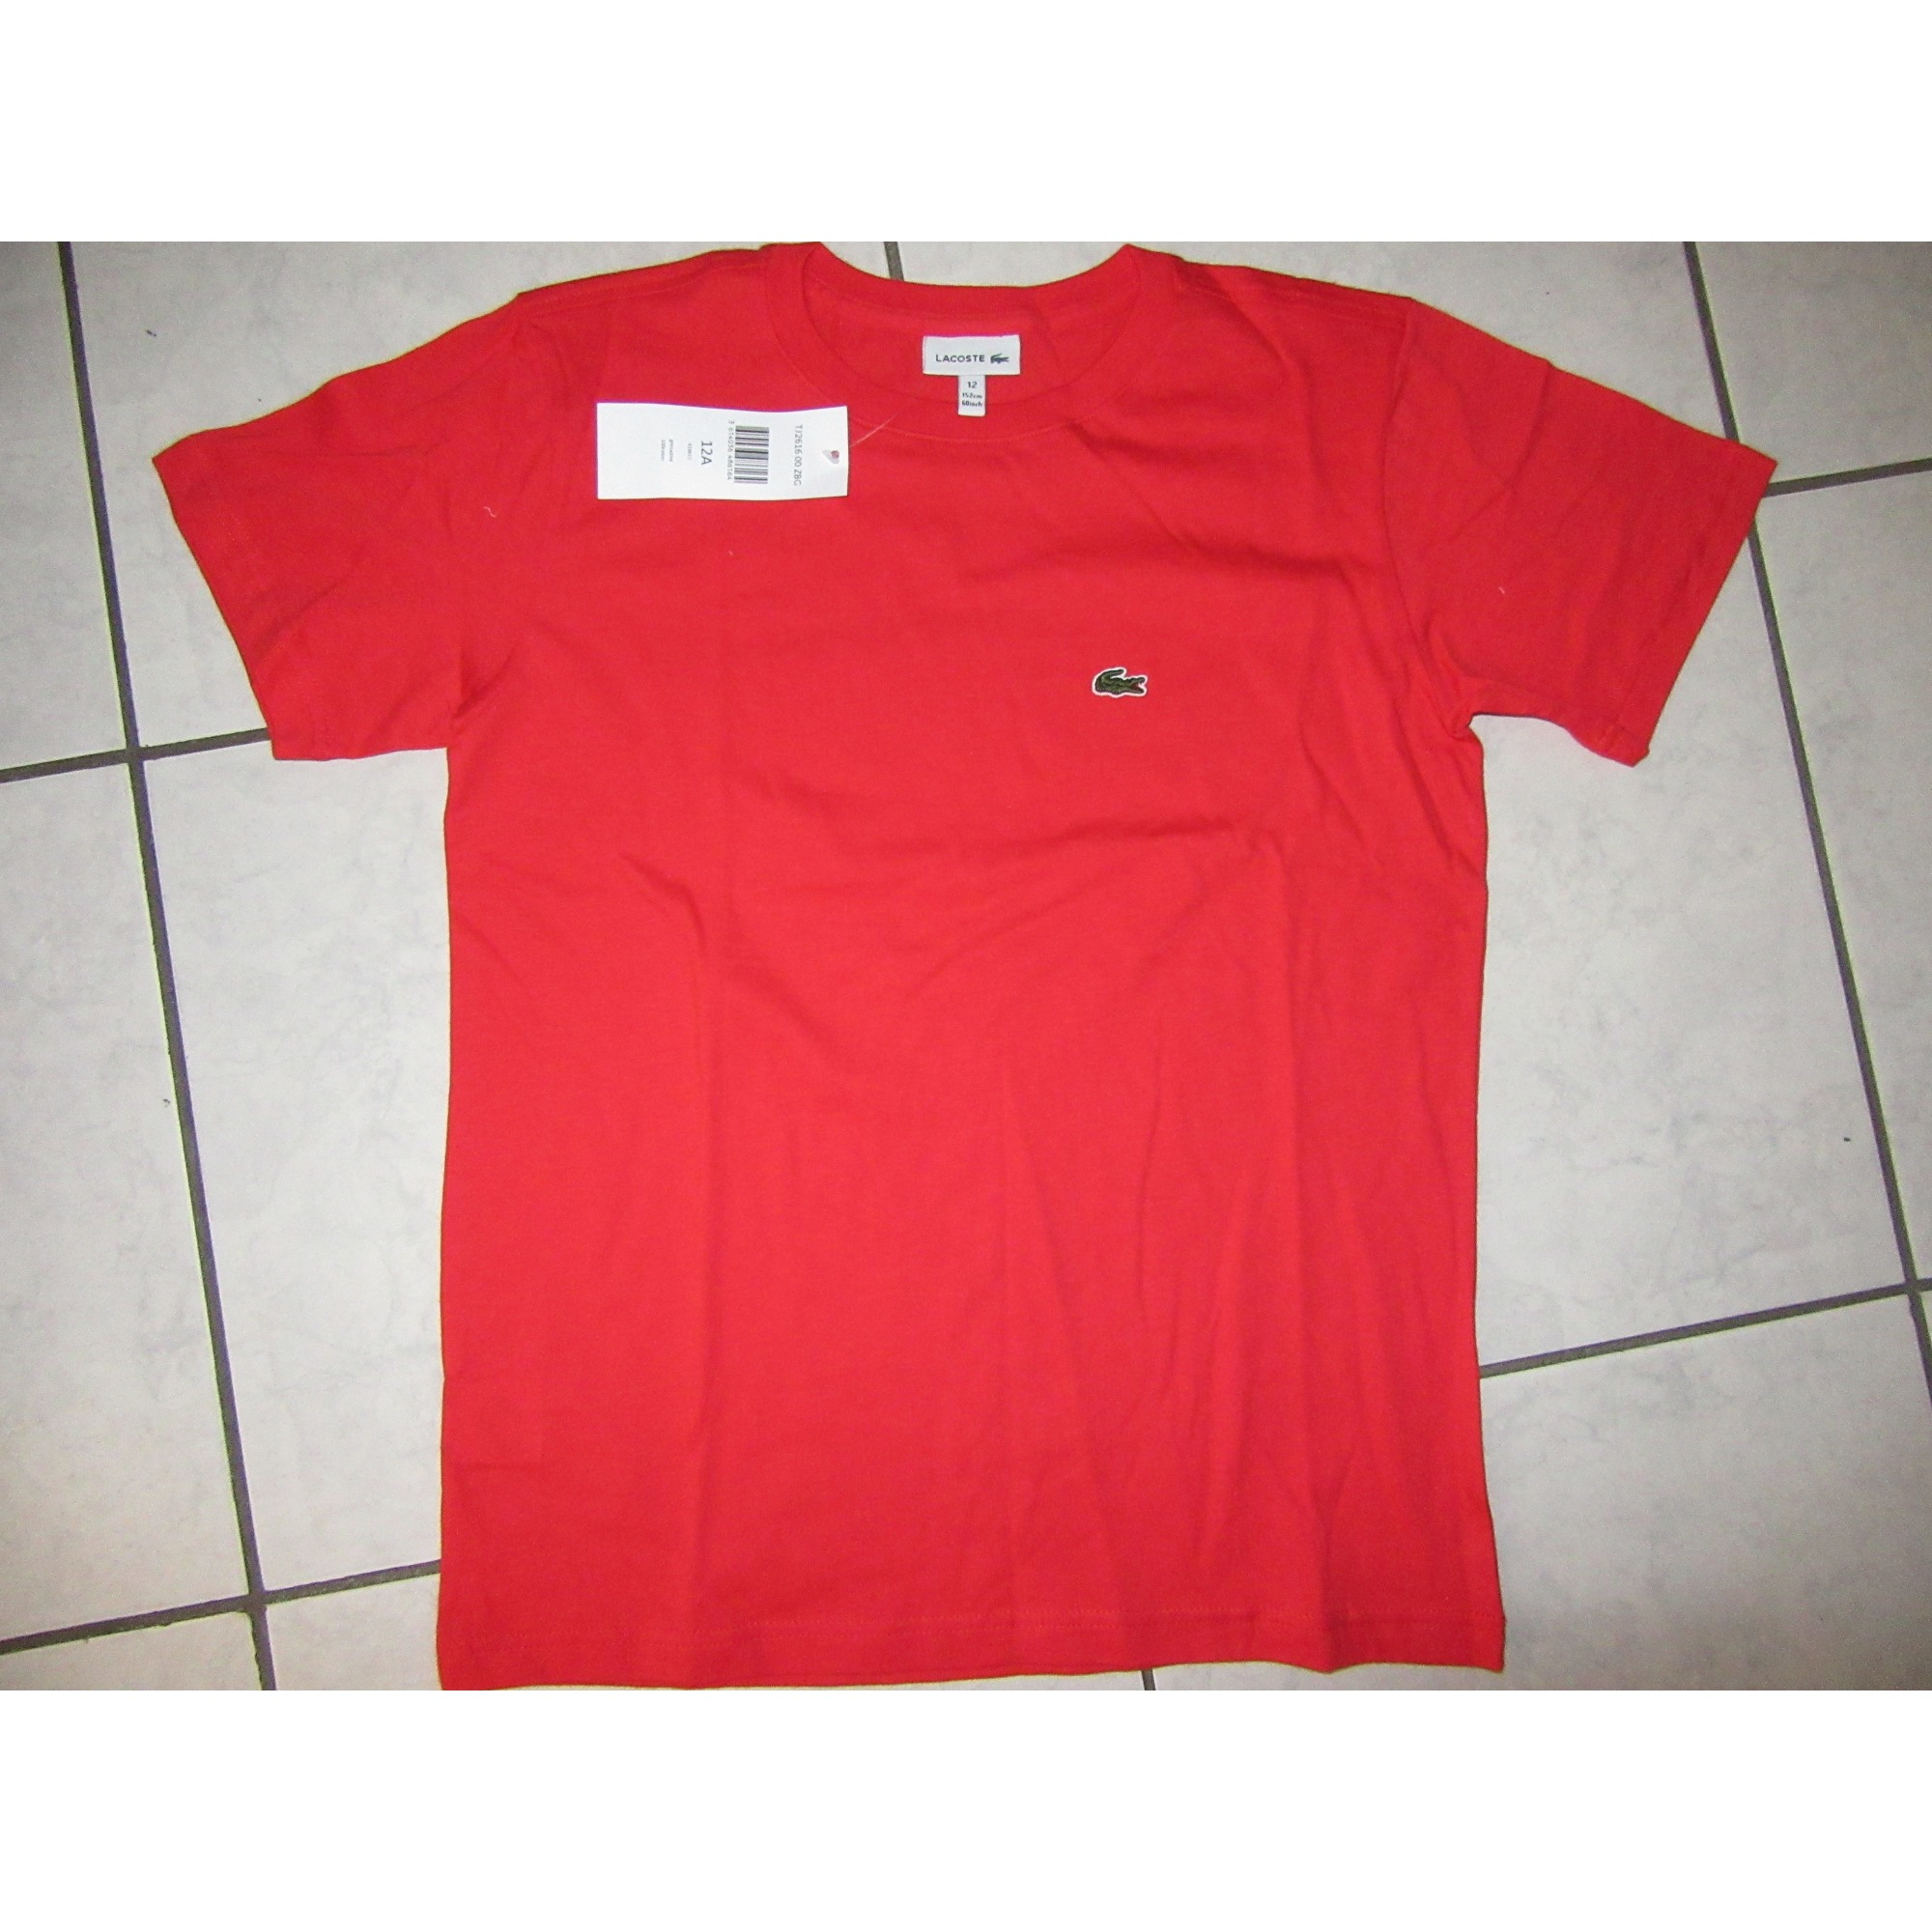 8eea357ae6307 Tee-shirt LACOSTE 11-12 ans rouge - 7681636